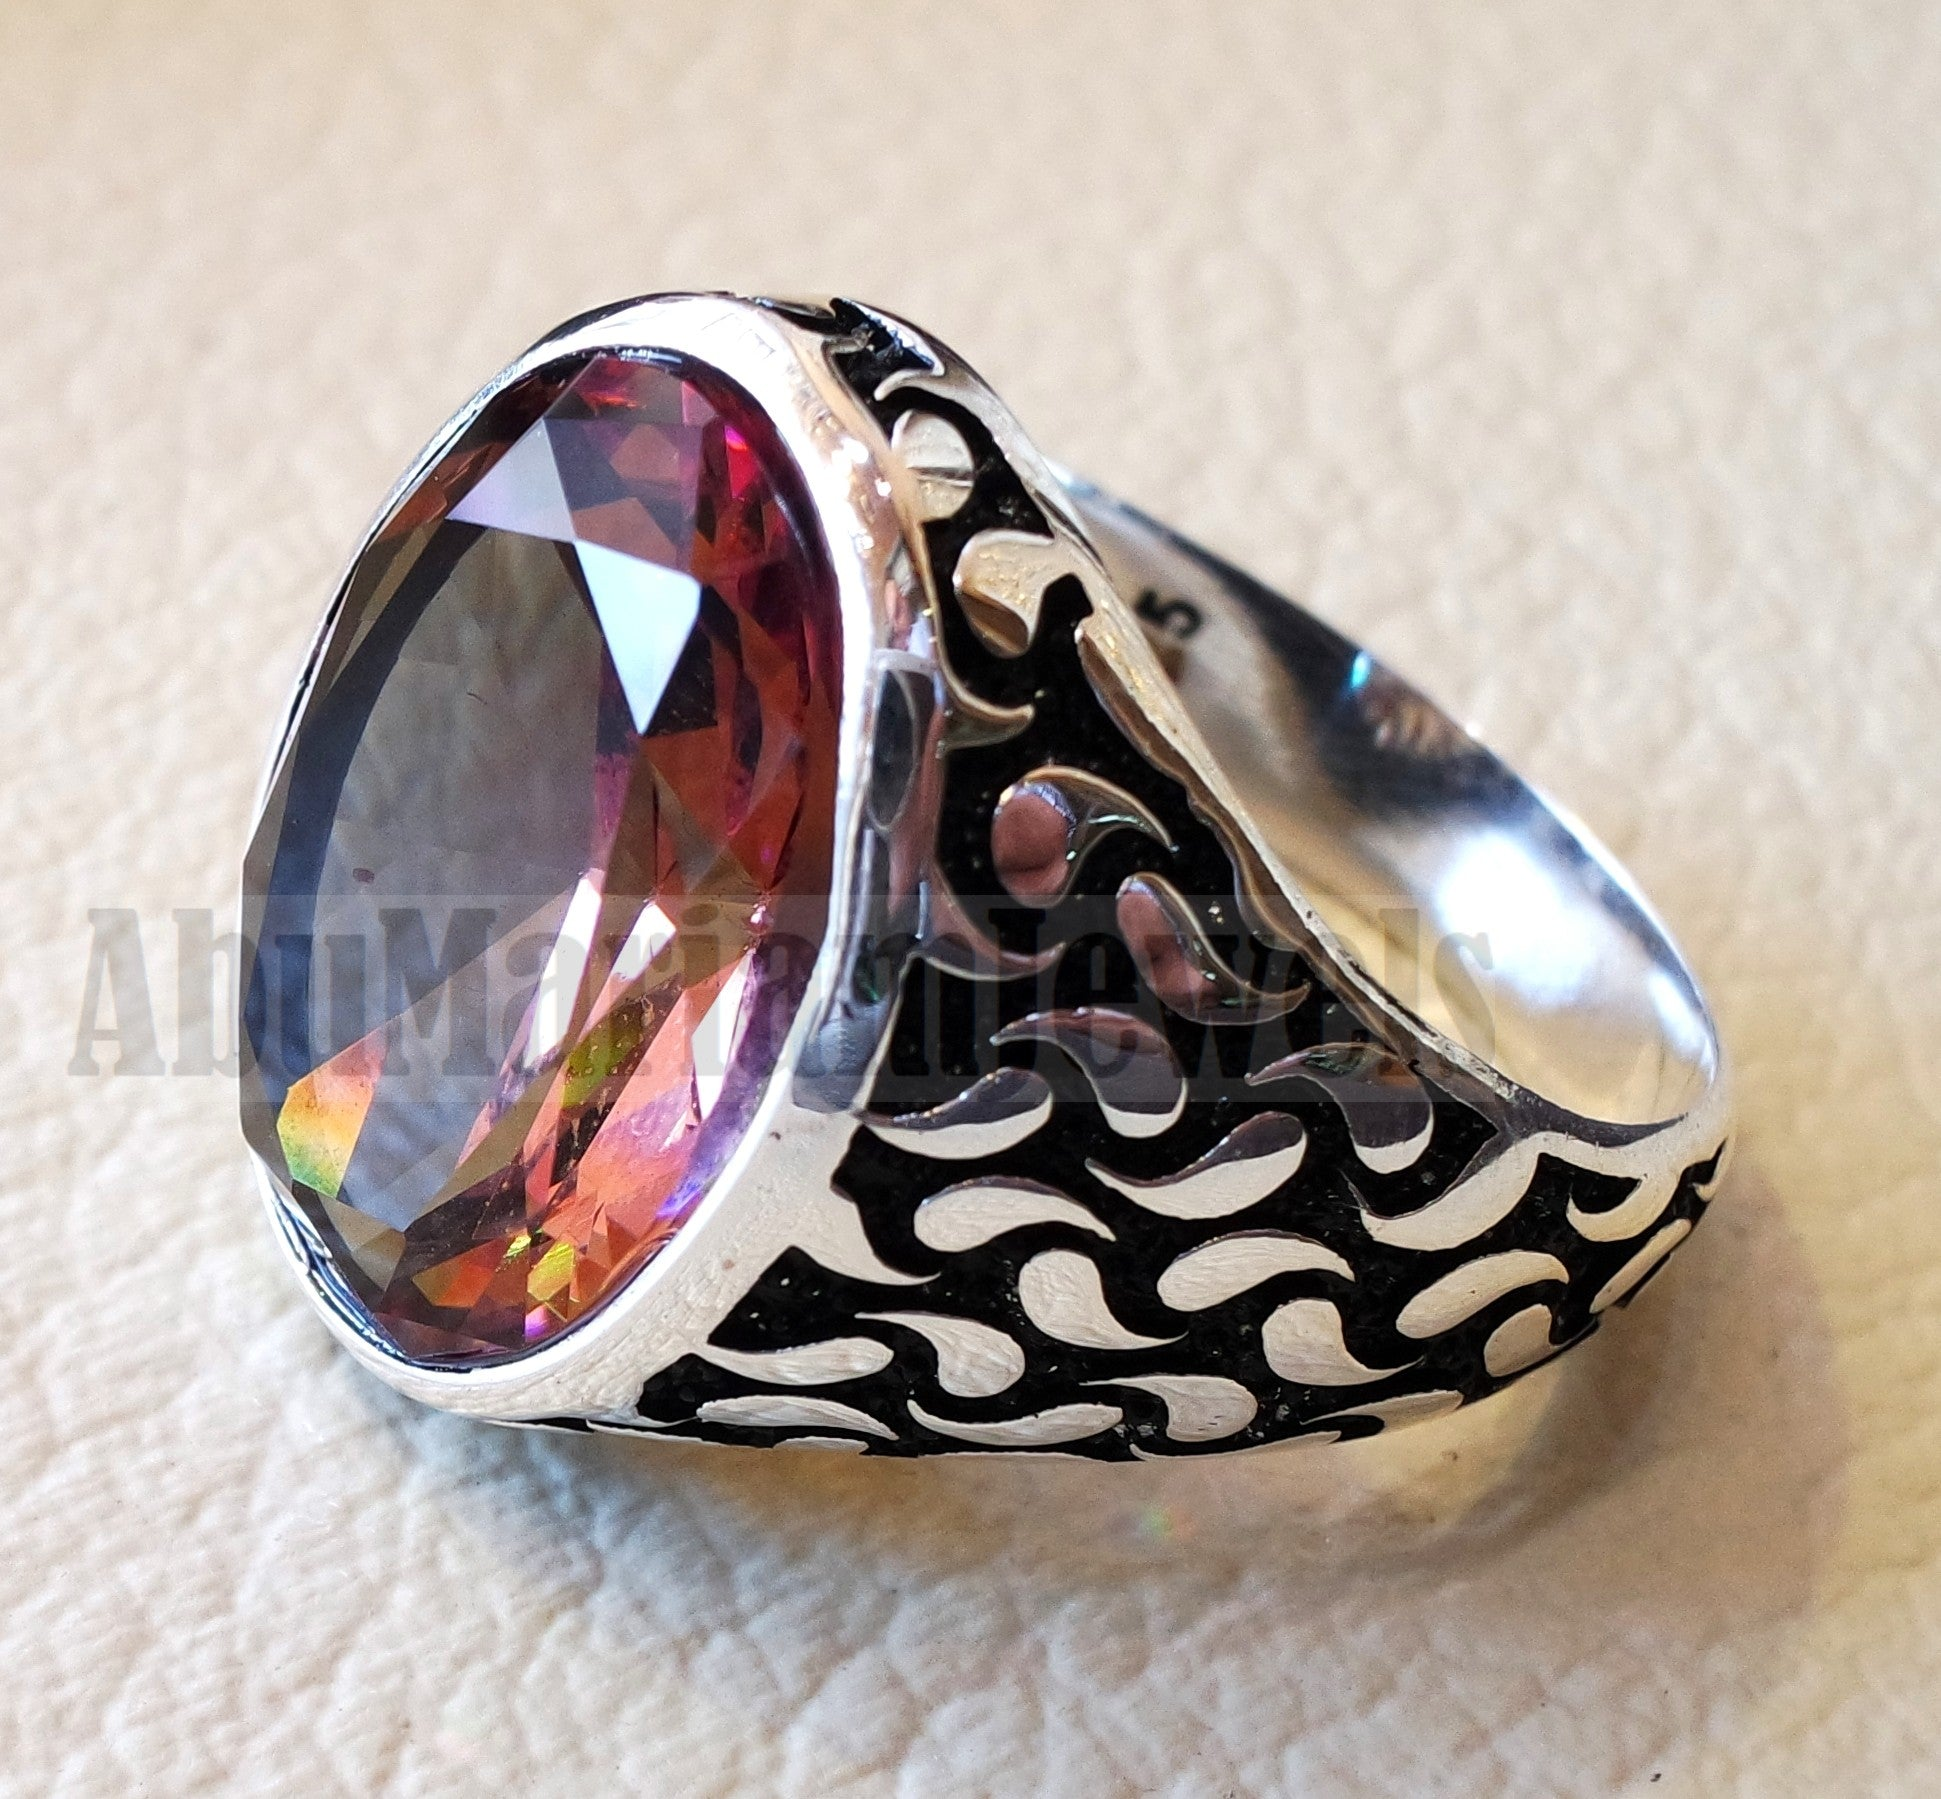 Zultanite oval natural changing color rare gem in sterling silver 925 Diaspore men ring cut stone all sizes  Zu-002